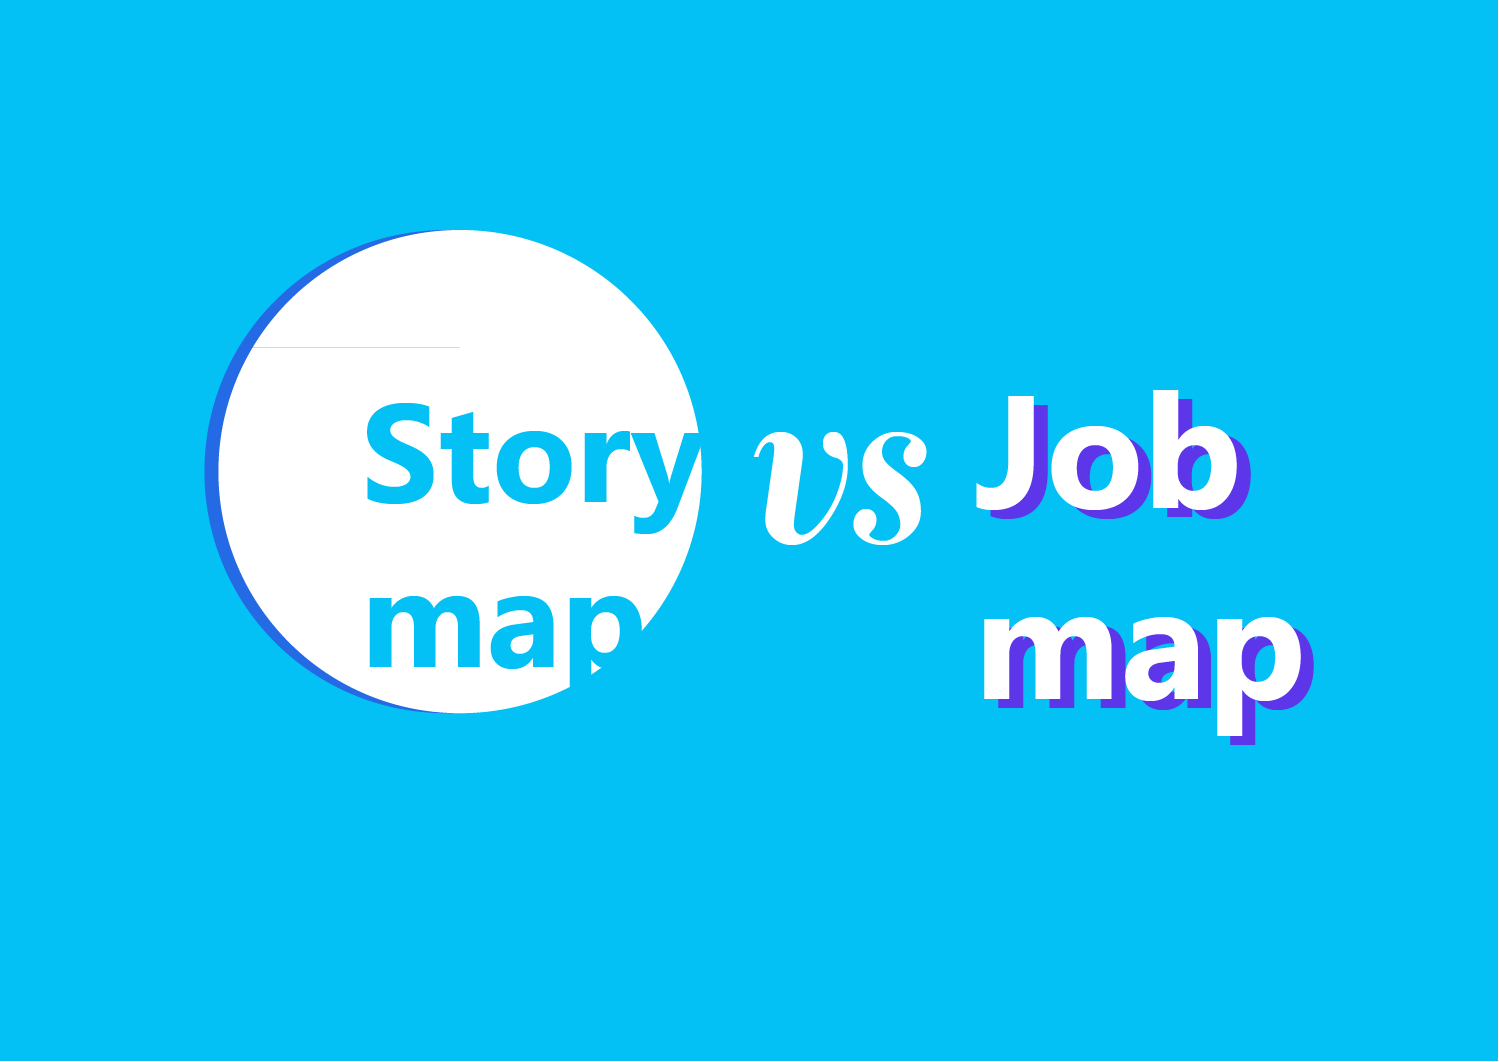 Job Map Vs Story Map — What's the difference? - Ajayraj - Medium